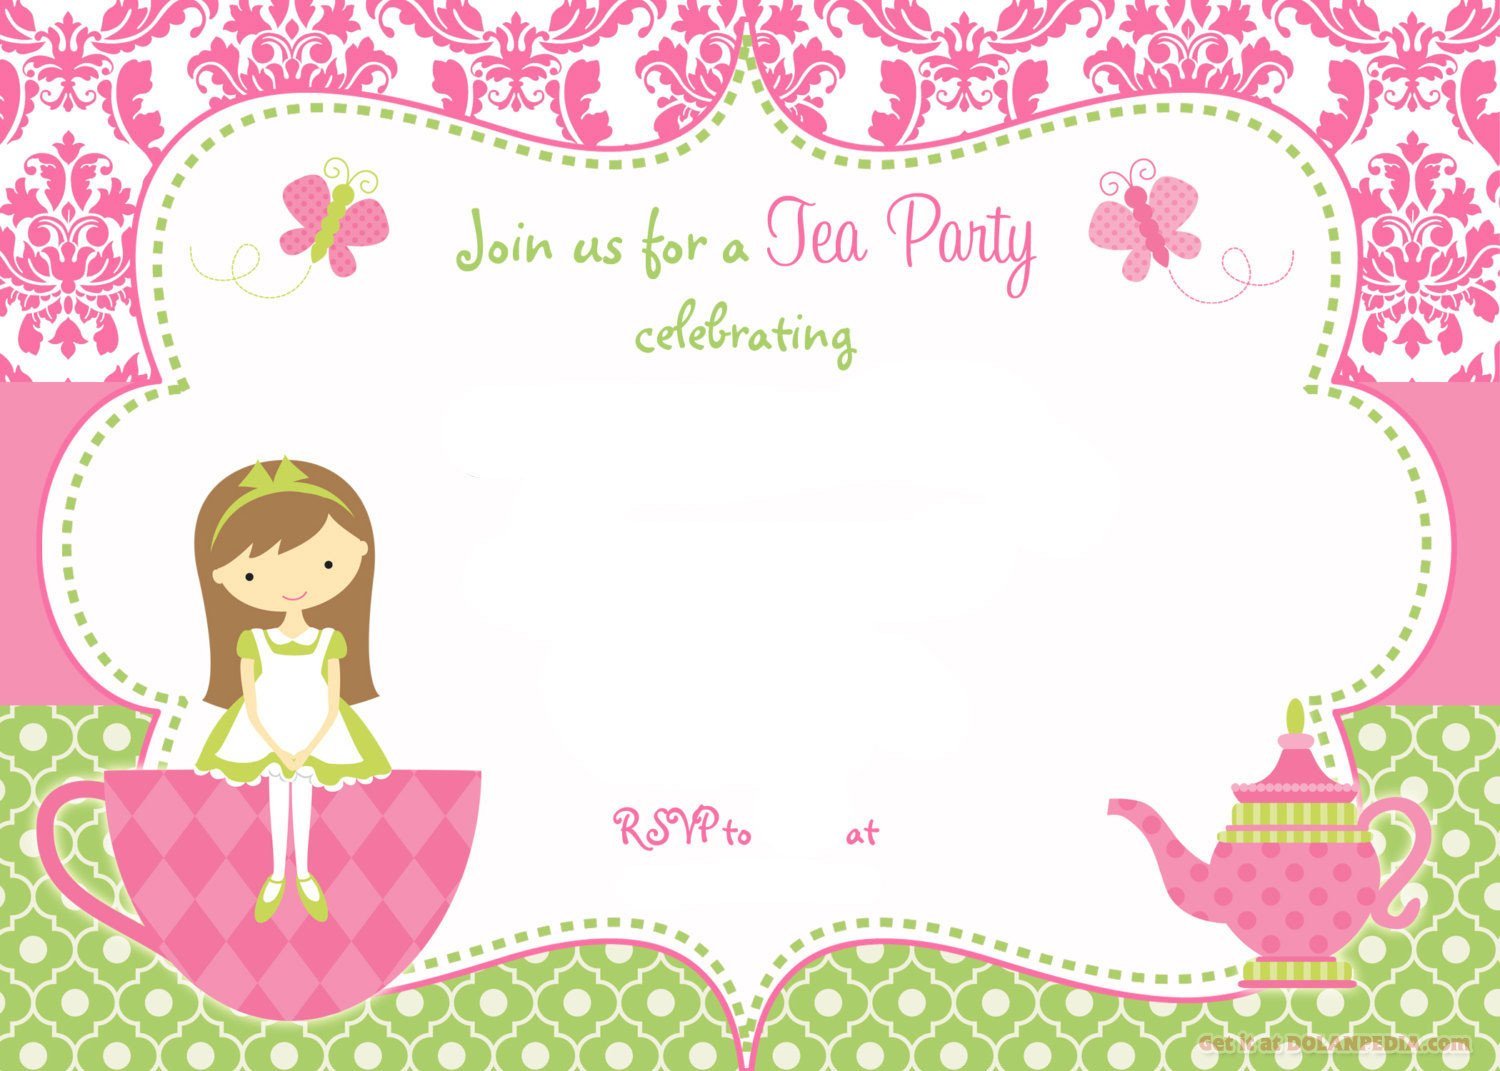 Tea Party Invitation Template Free Printable Tea Party Invitation Template for Girl